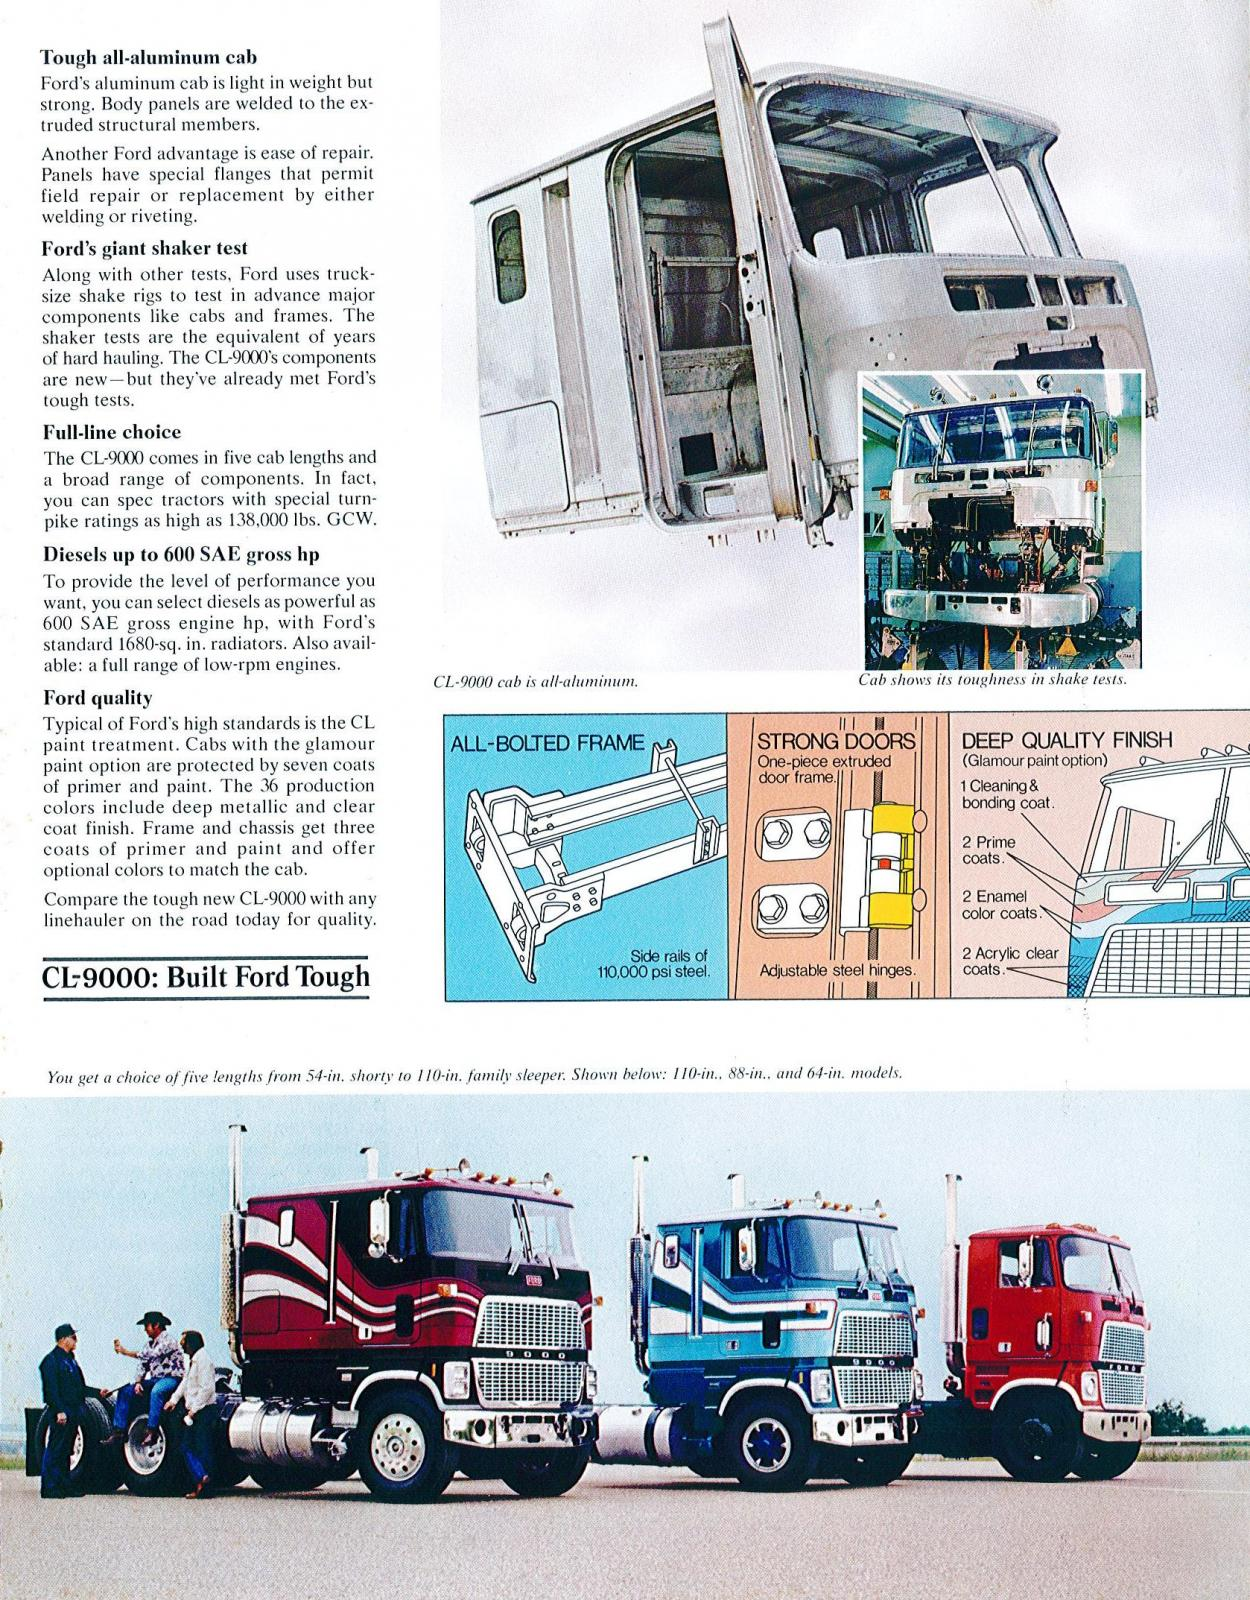 ford cl 9000 ford s surprise in 1977 other truck makes rh bigmacktrucks com 1947 Ford Coe Truck 1950 ford coe truck for sale